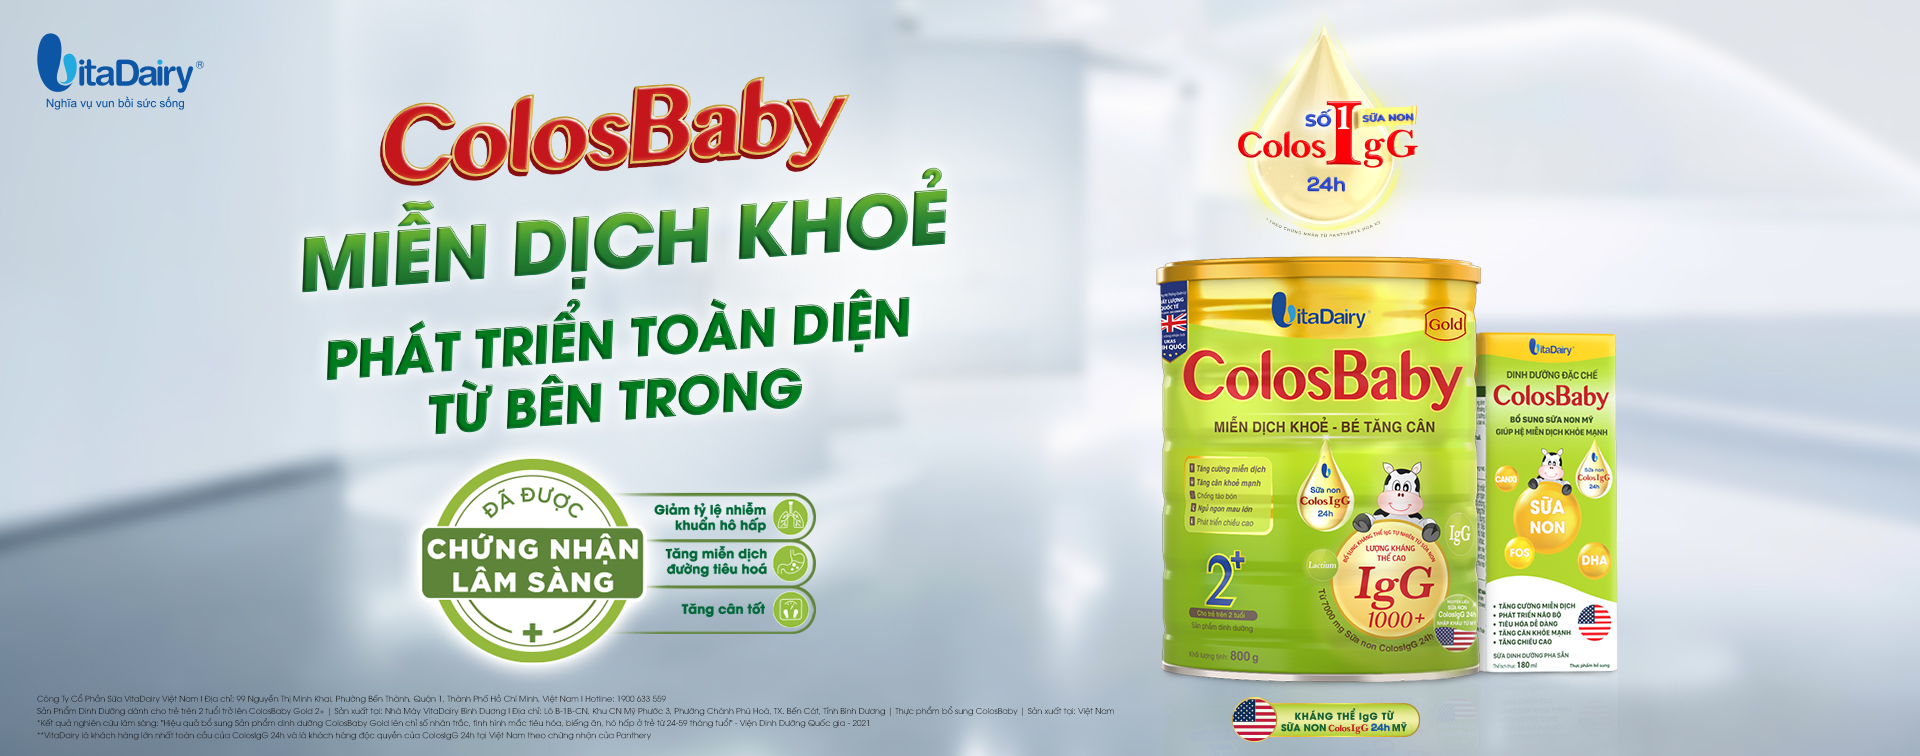 ColosBaby Gold